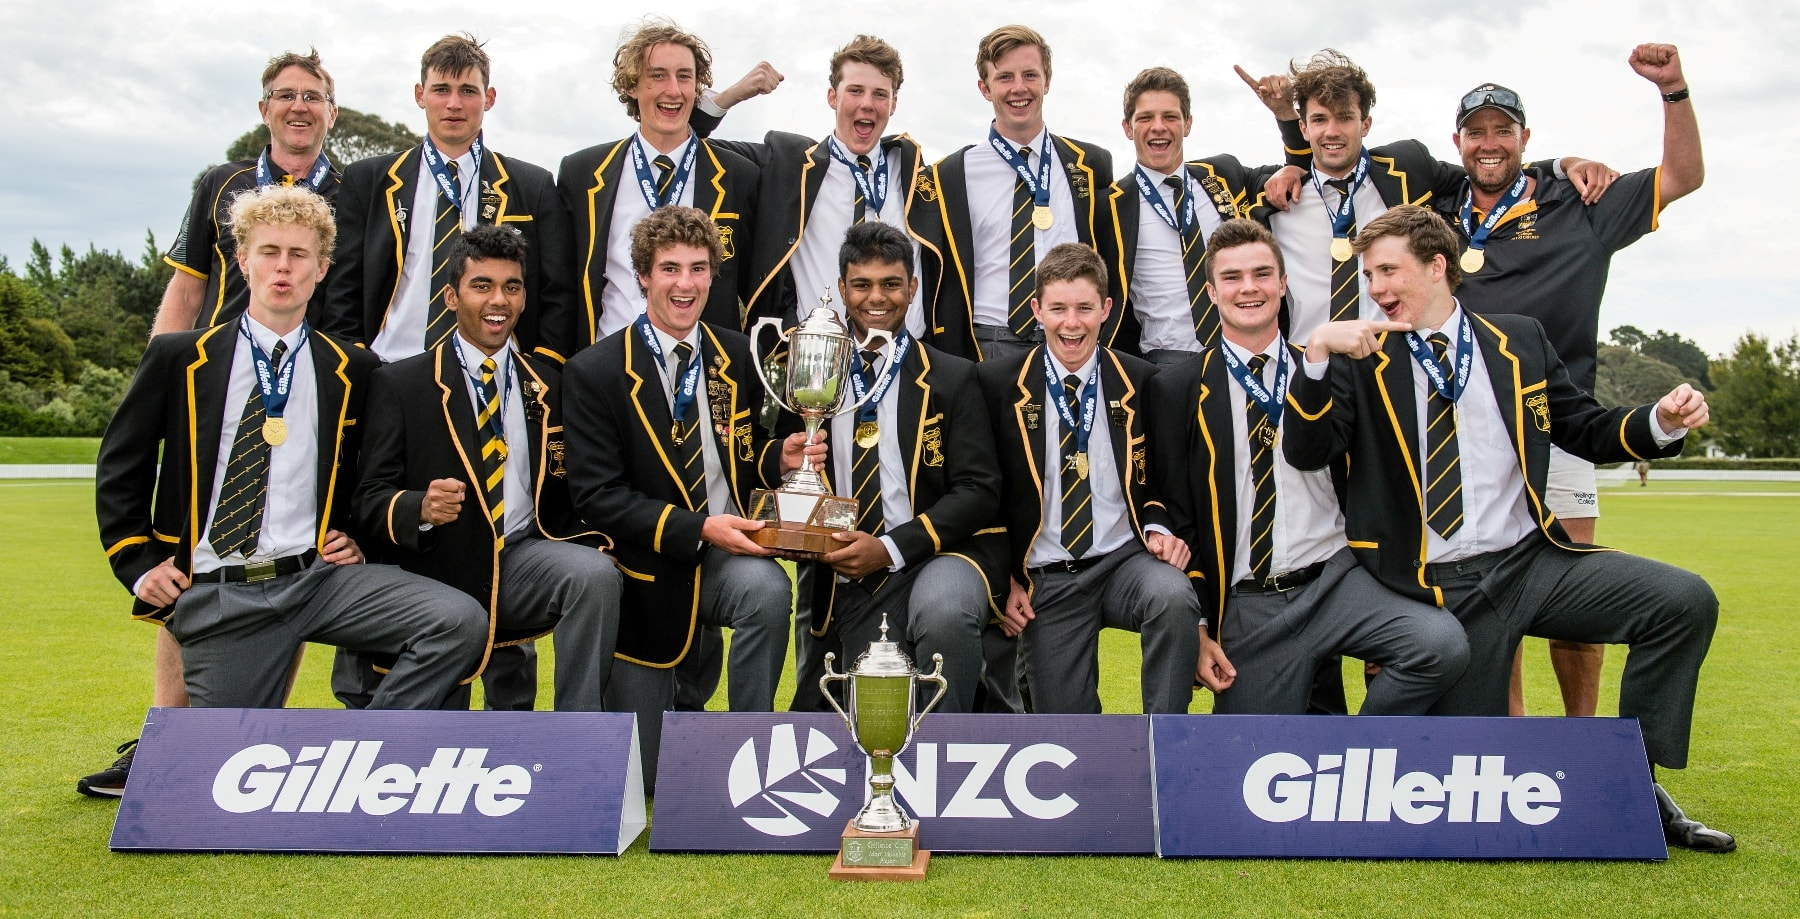 #sport:  Old Boys make up core of WN Colllege 1st XI 2018 Gillette Cup winners